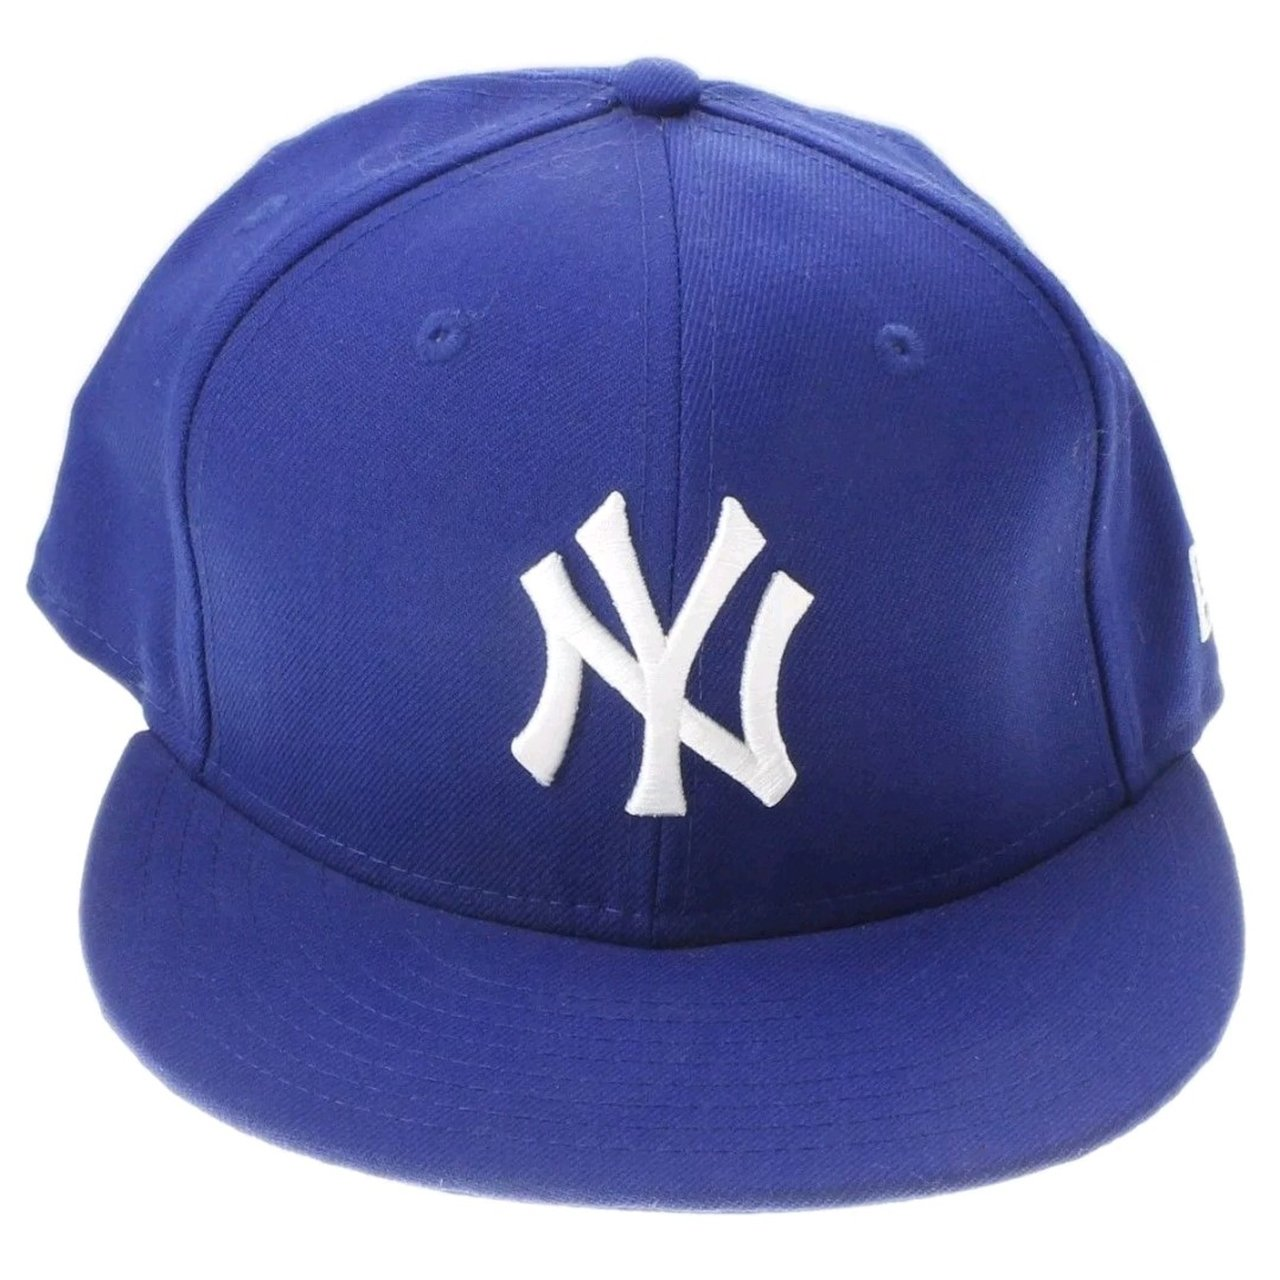 online retailer 511be ccda0  movieguru. 9 months ago. Lathrop, San Joaquin County, United States. New  York Yankees MLB New Era Cap, 59Fifty Fitted Hat 7 ...